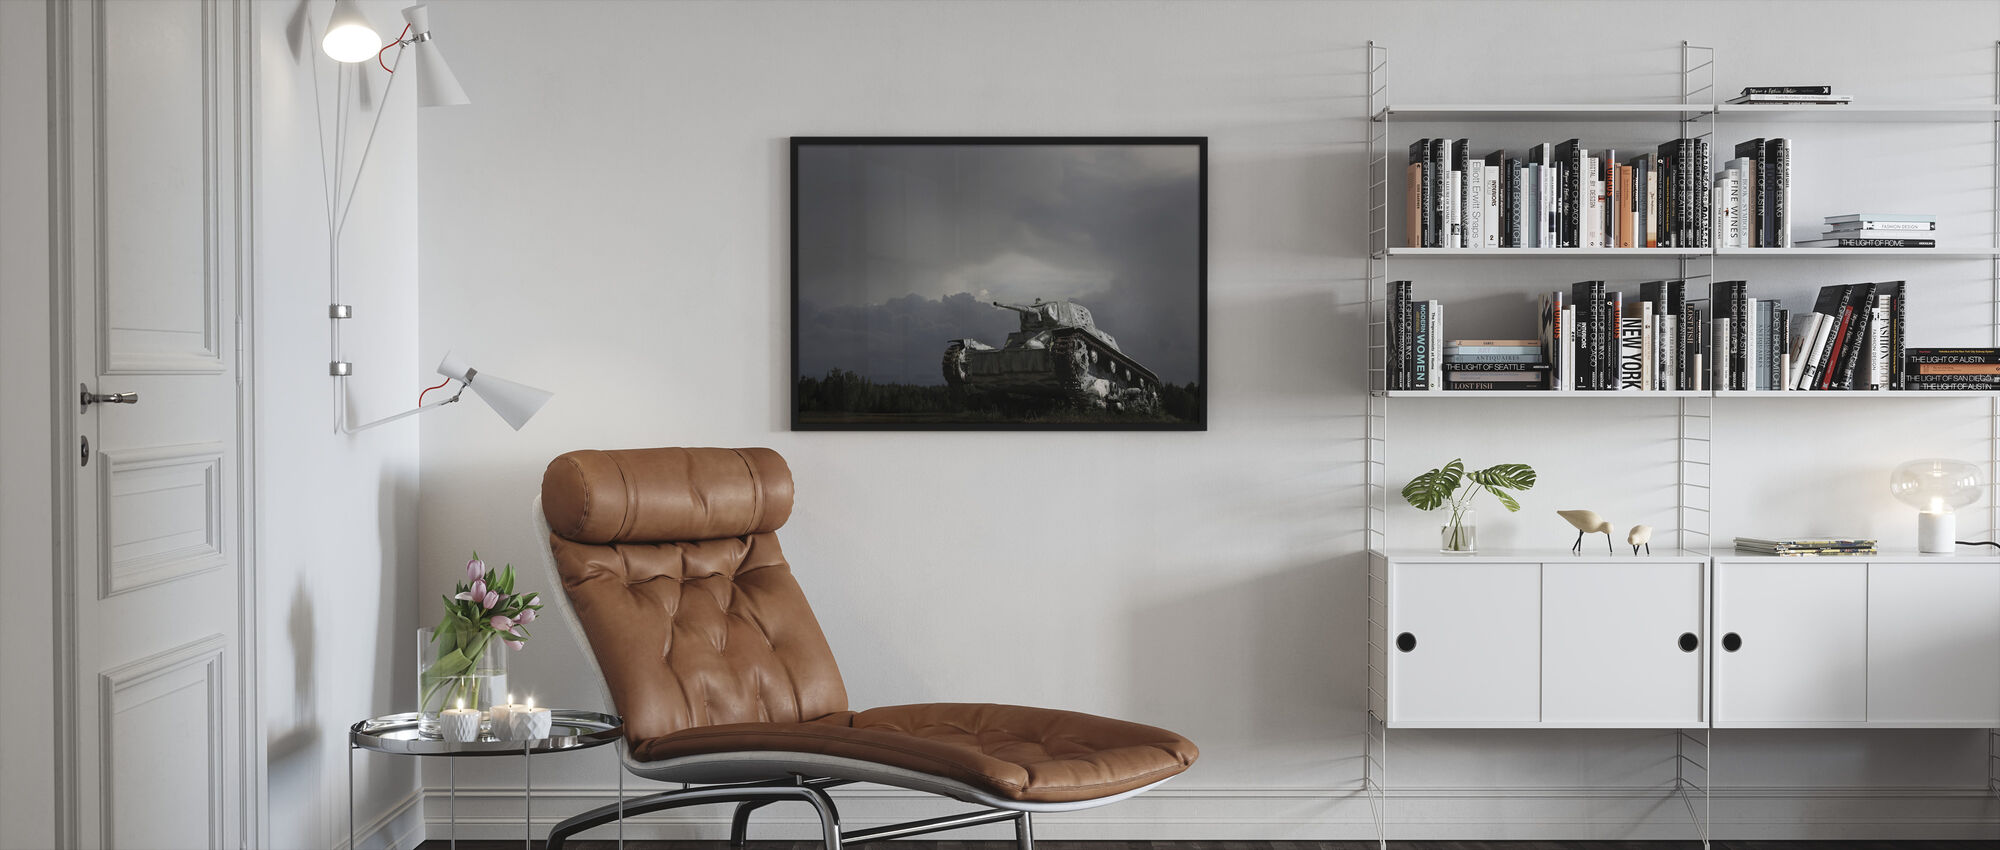 Old Tank - Framed print - Living Room